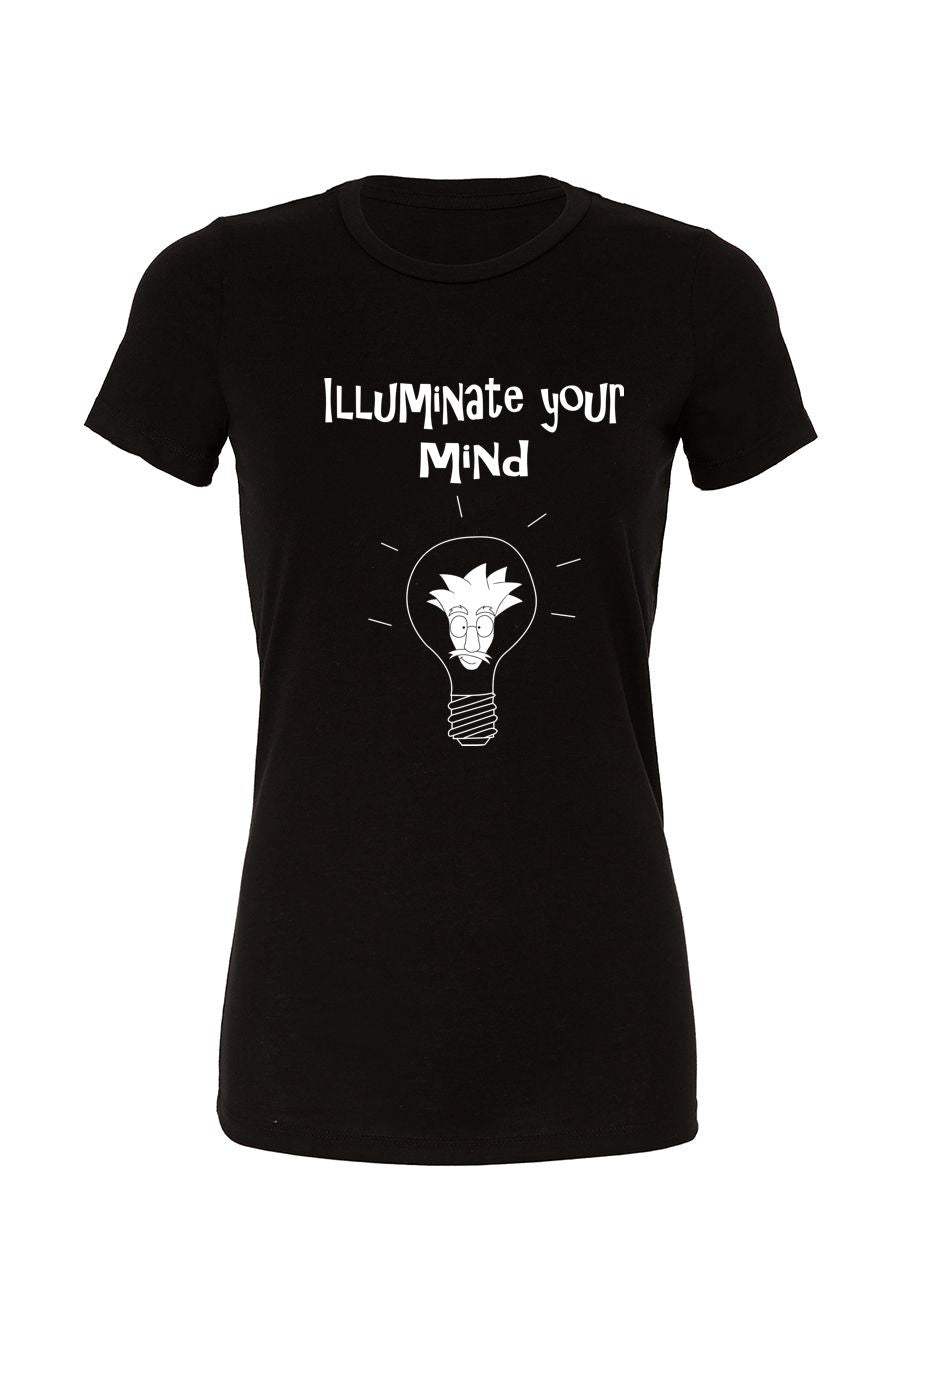 Illuminate Your Mind Women's Tee